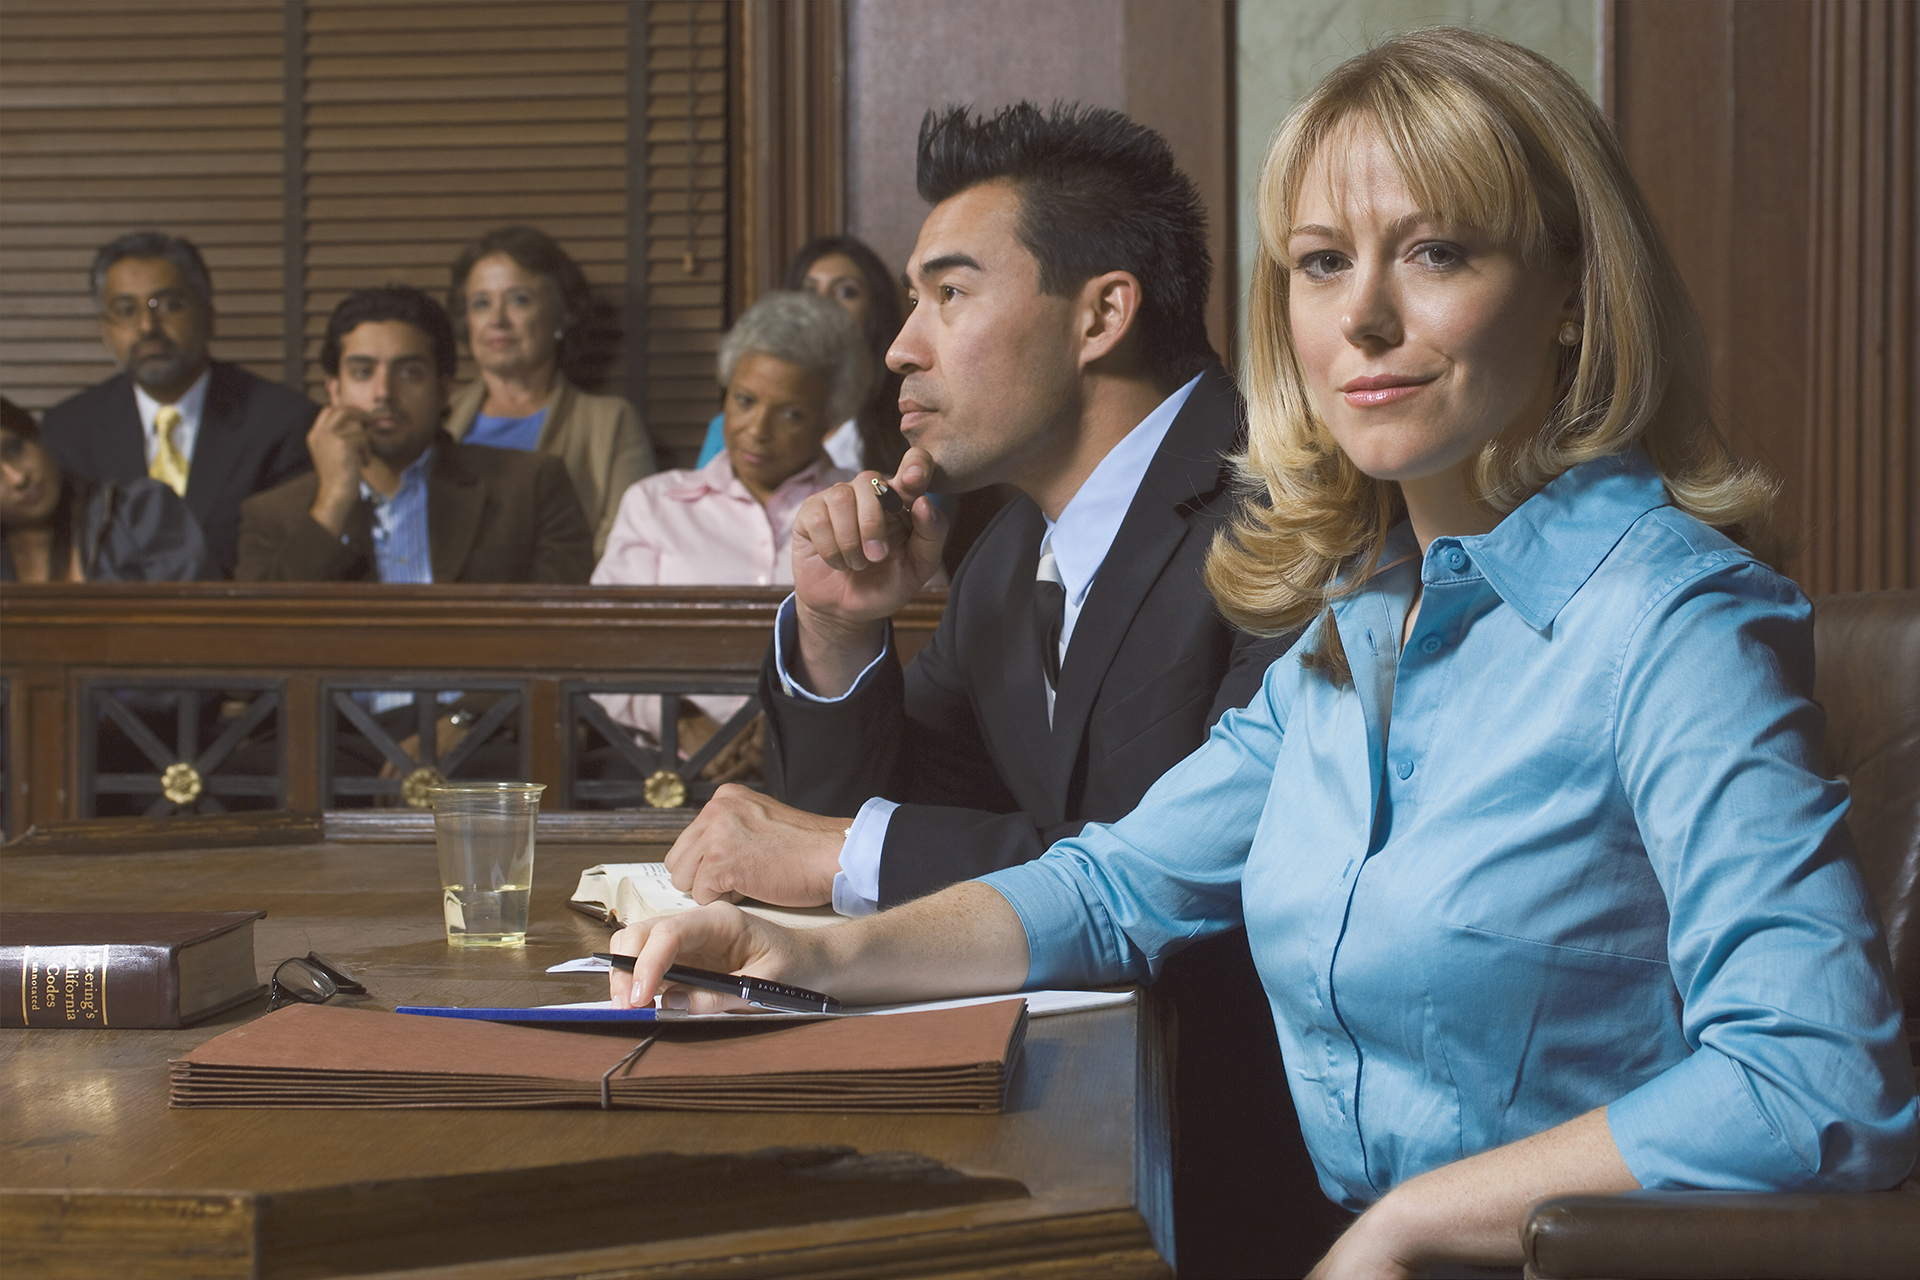 A Female Lawyer in Court representing a previously charged client within Malicious Prosecution litigation